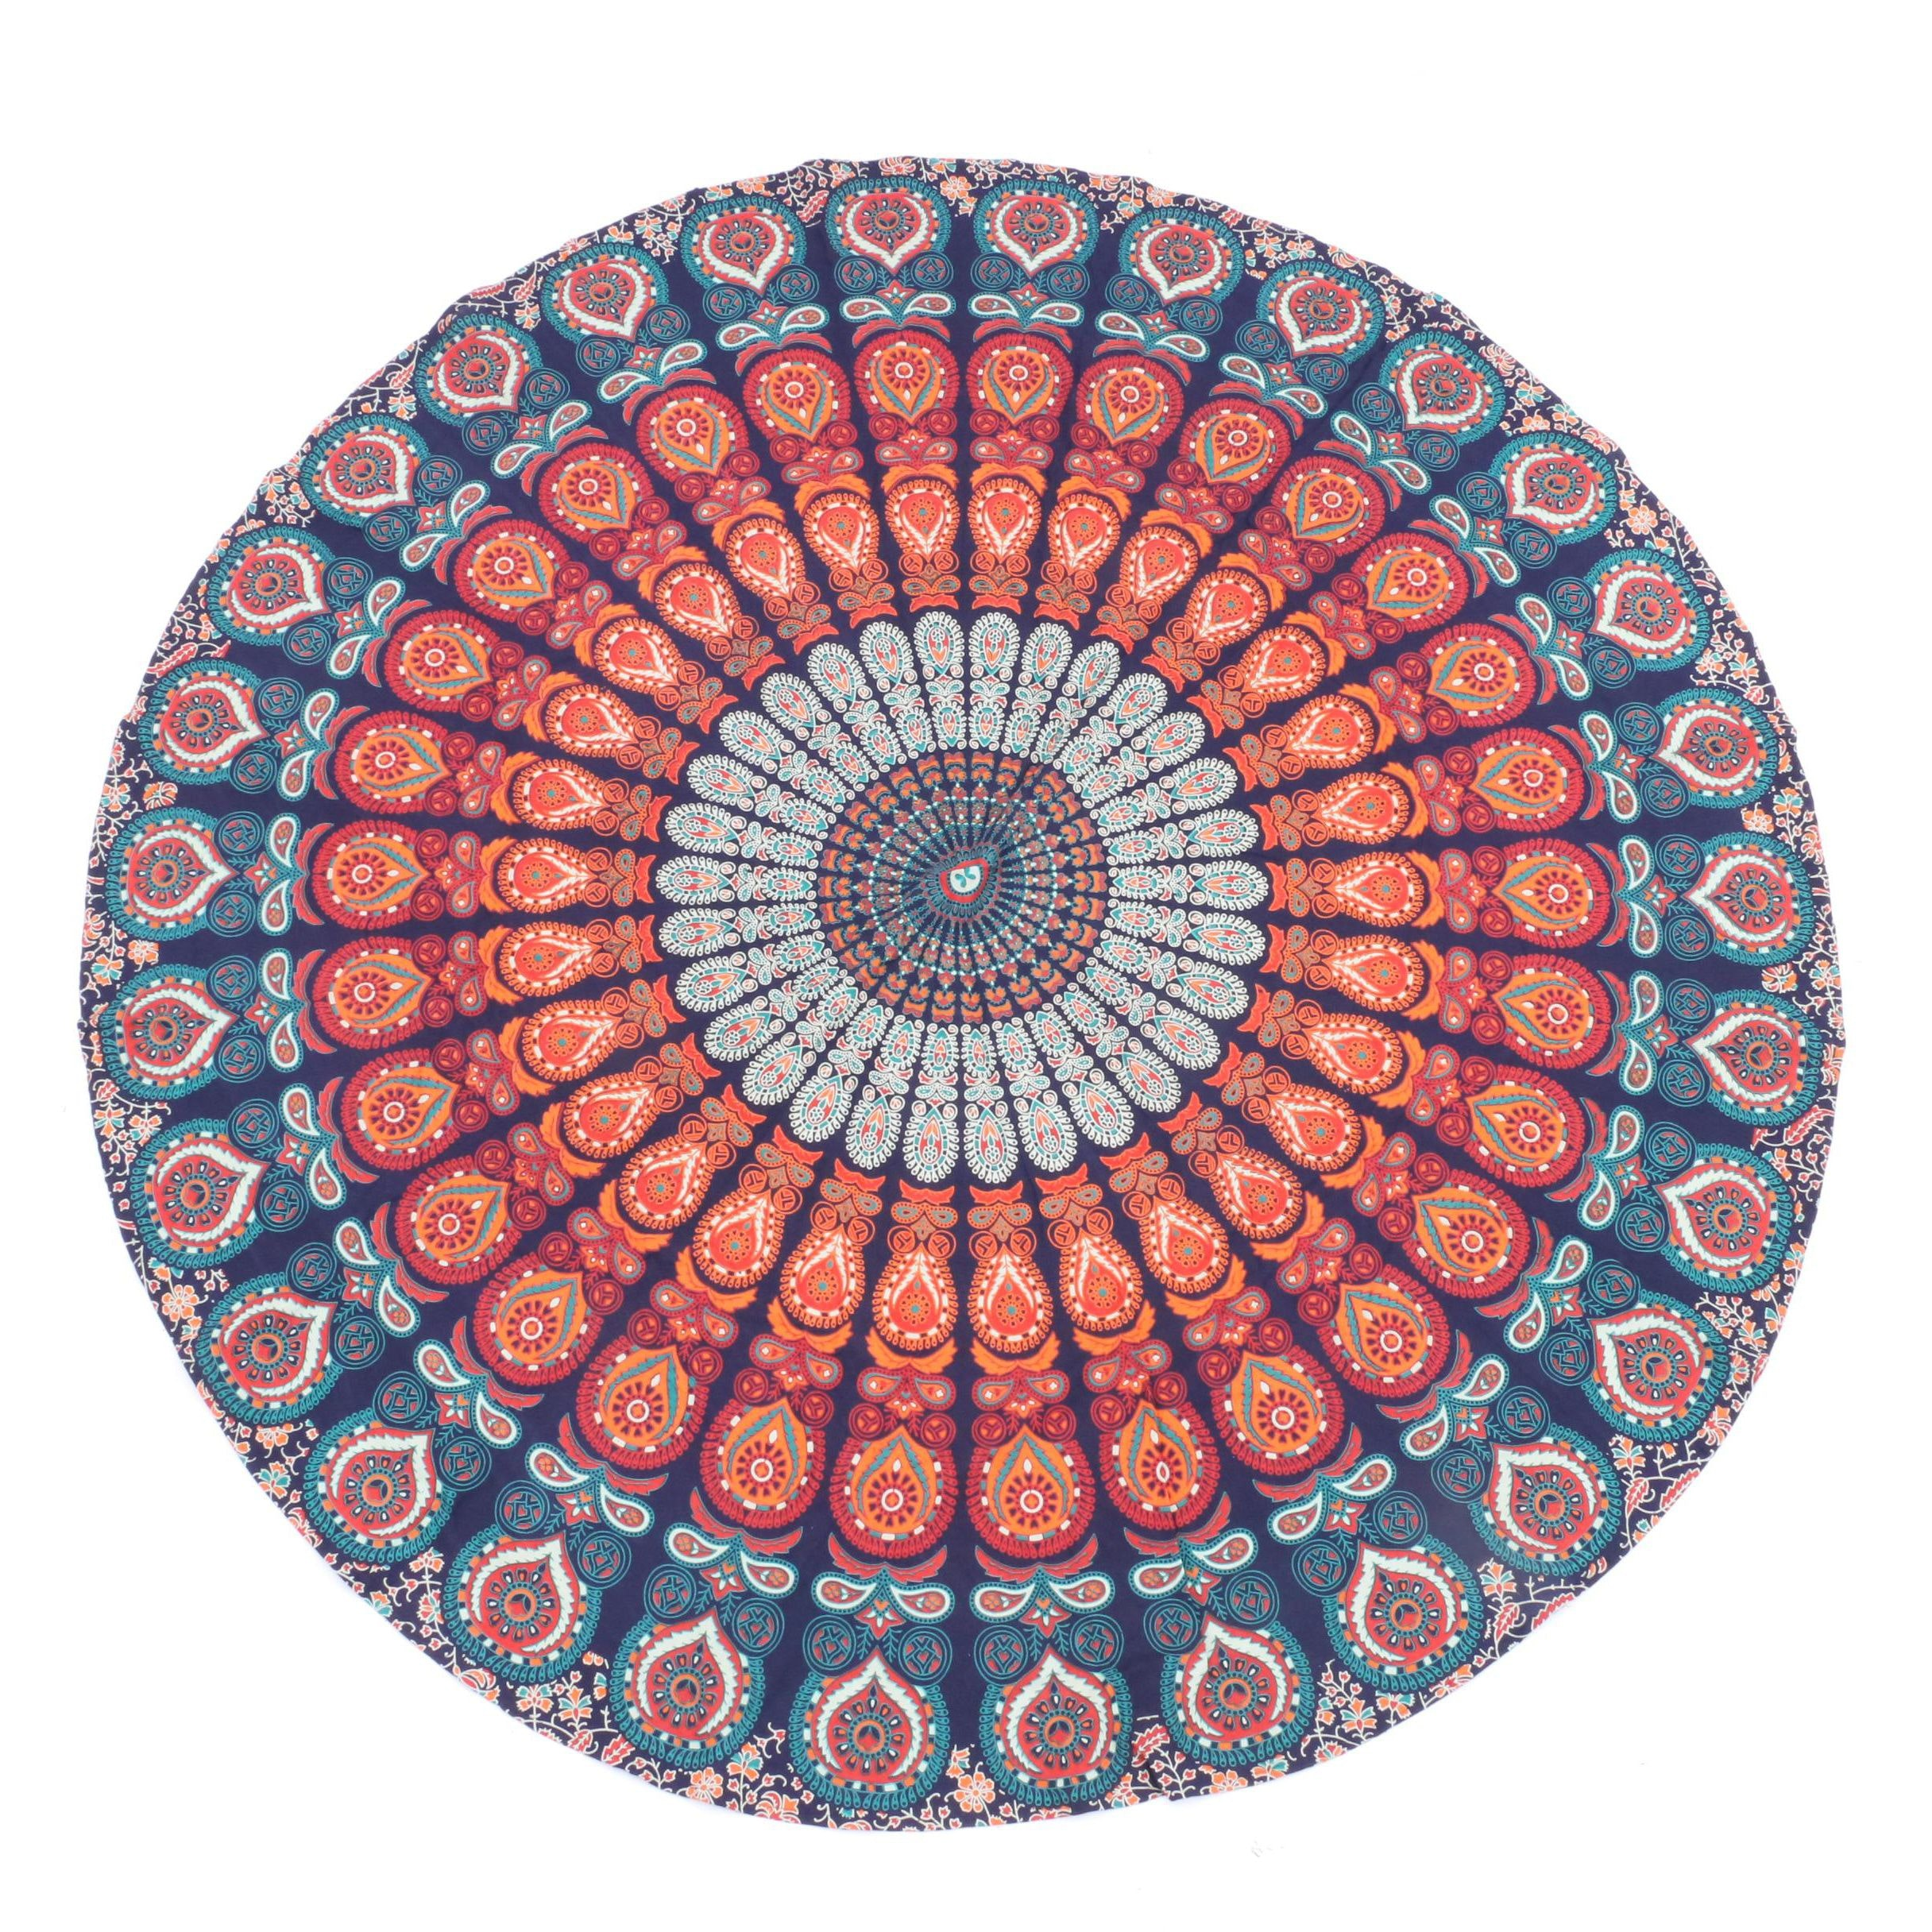 Round Indian Cotton Cover with Mandala